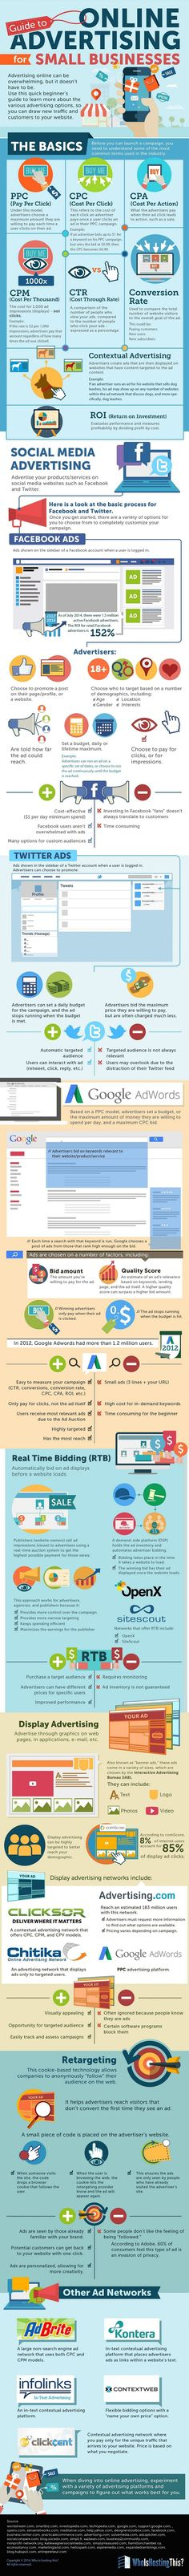 Guide To Online Advertising For Small Businesses - #infographic